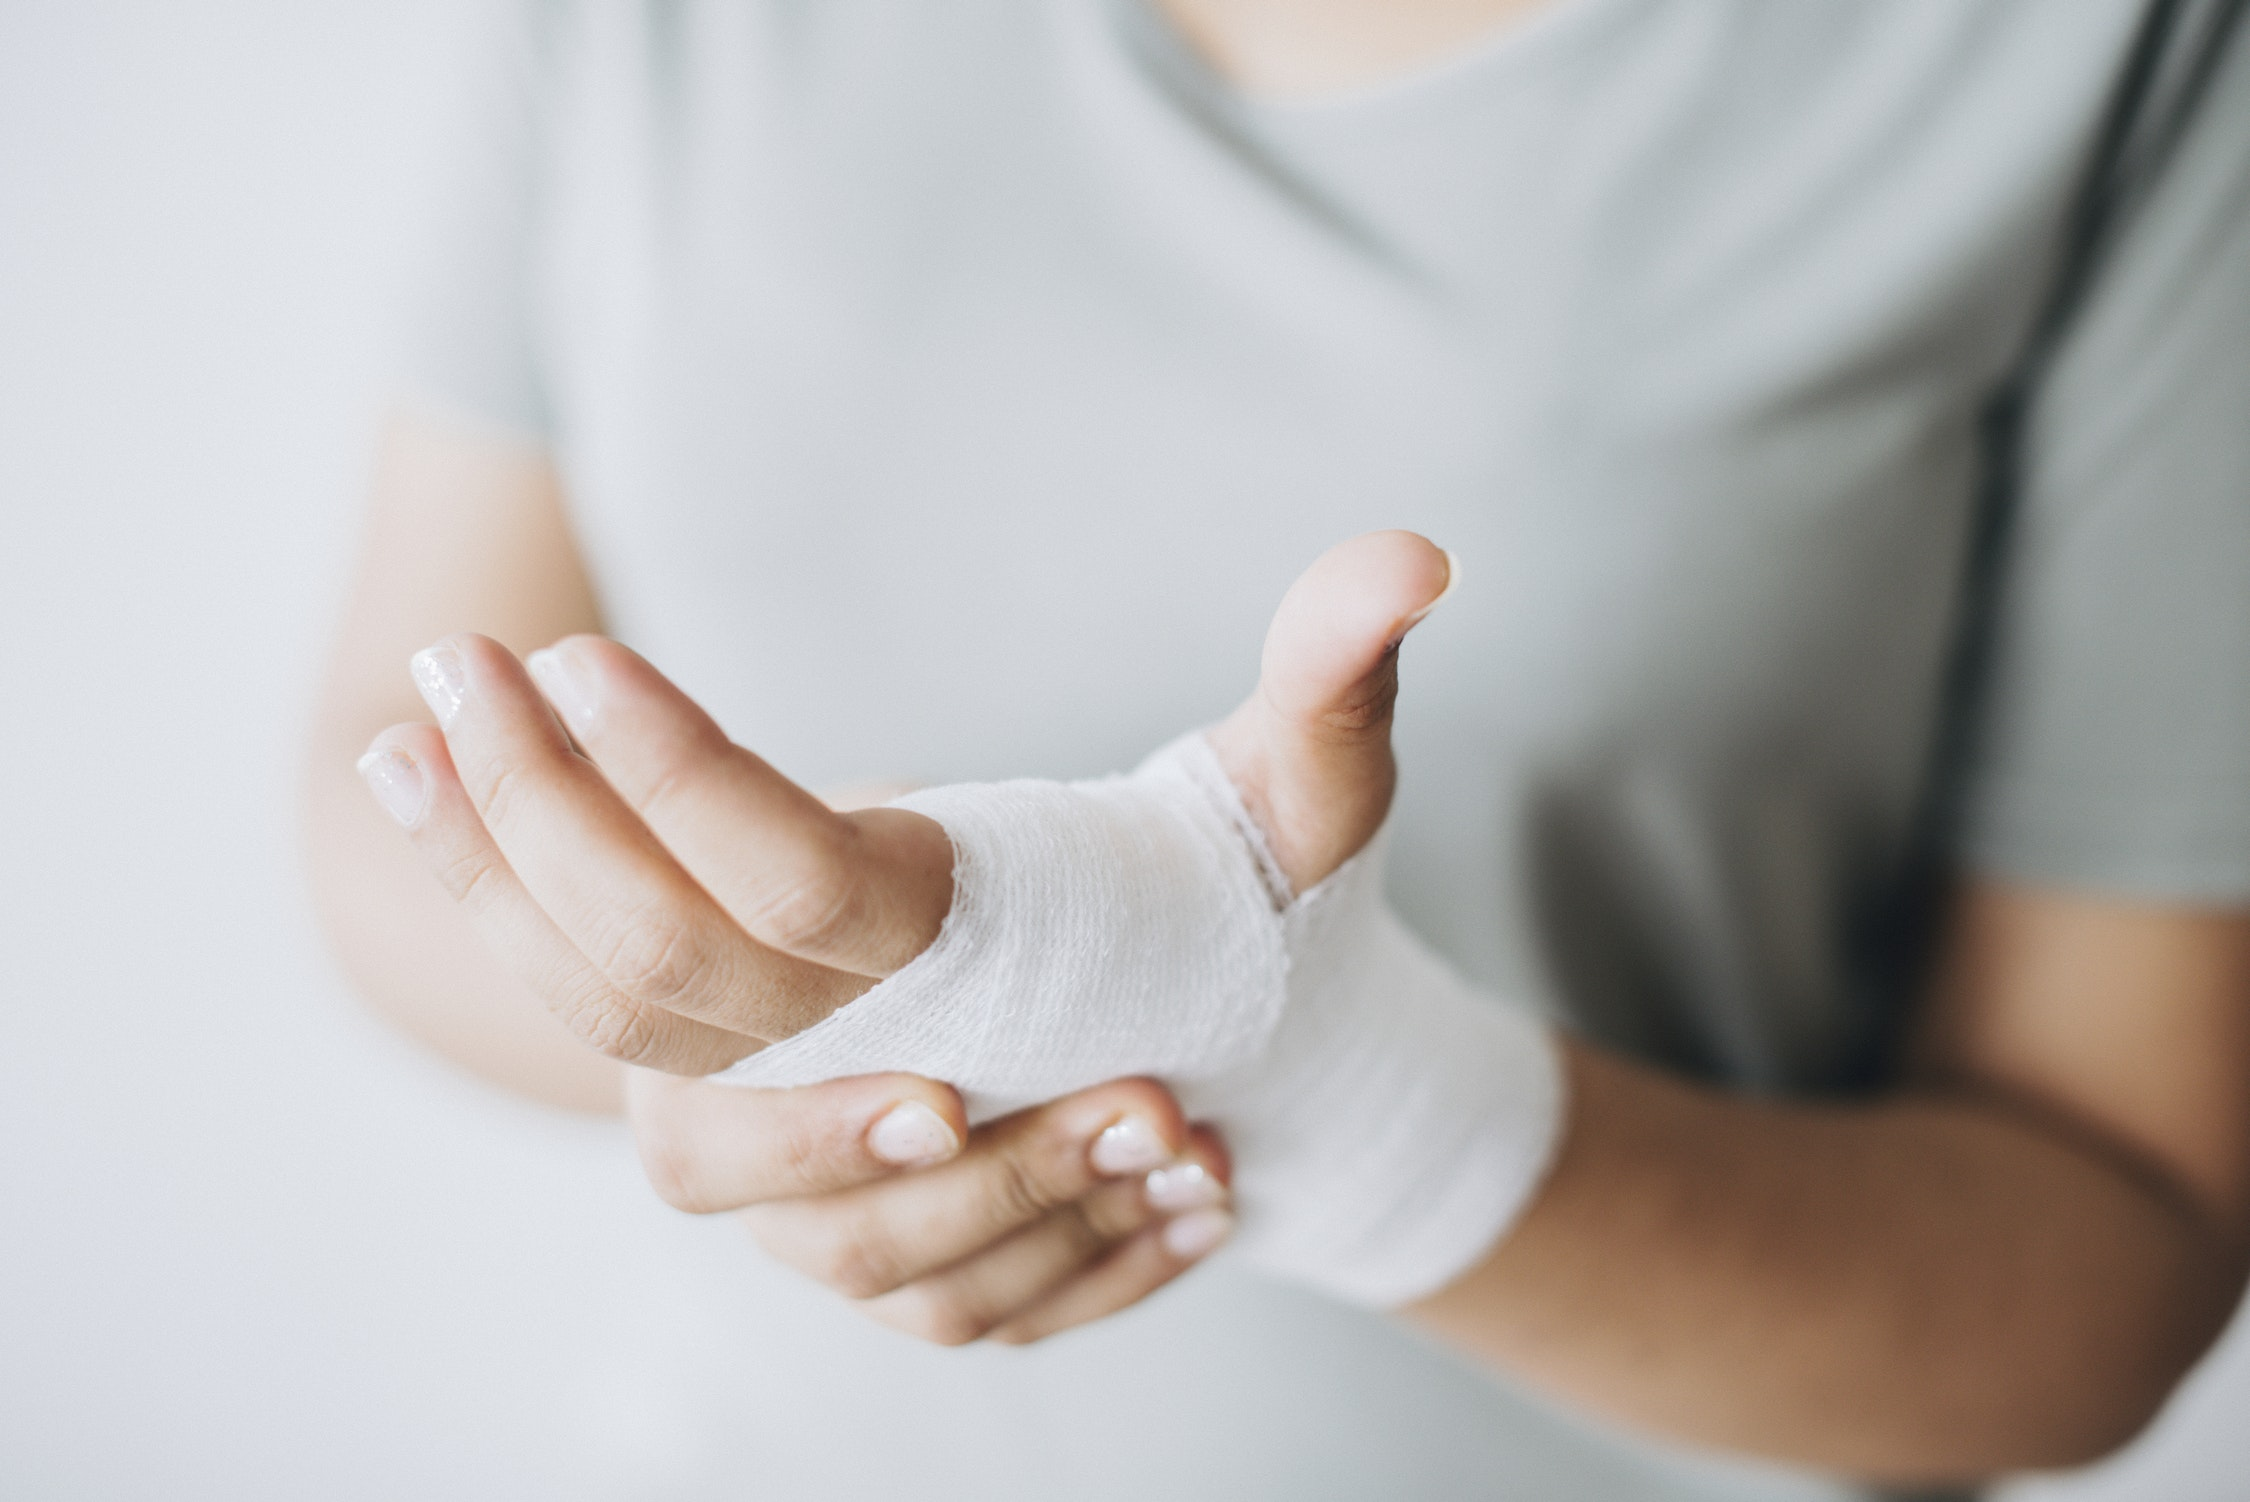 hand holding other hand wrapped in a bandage around the hand and wrist.